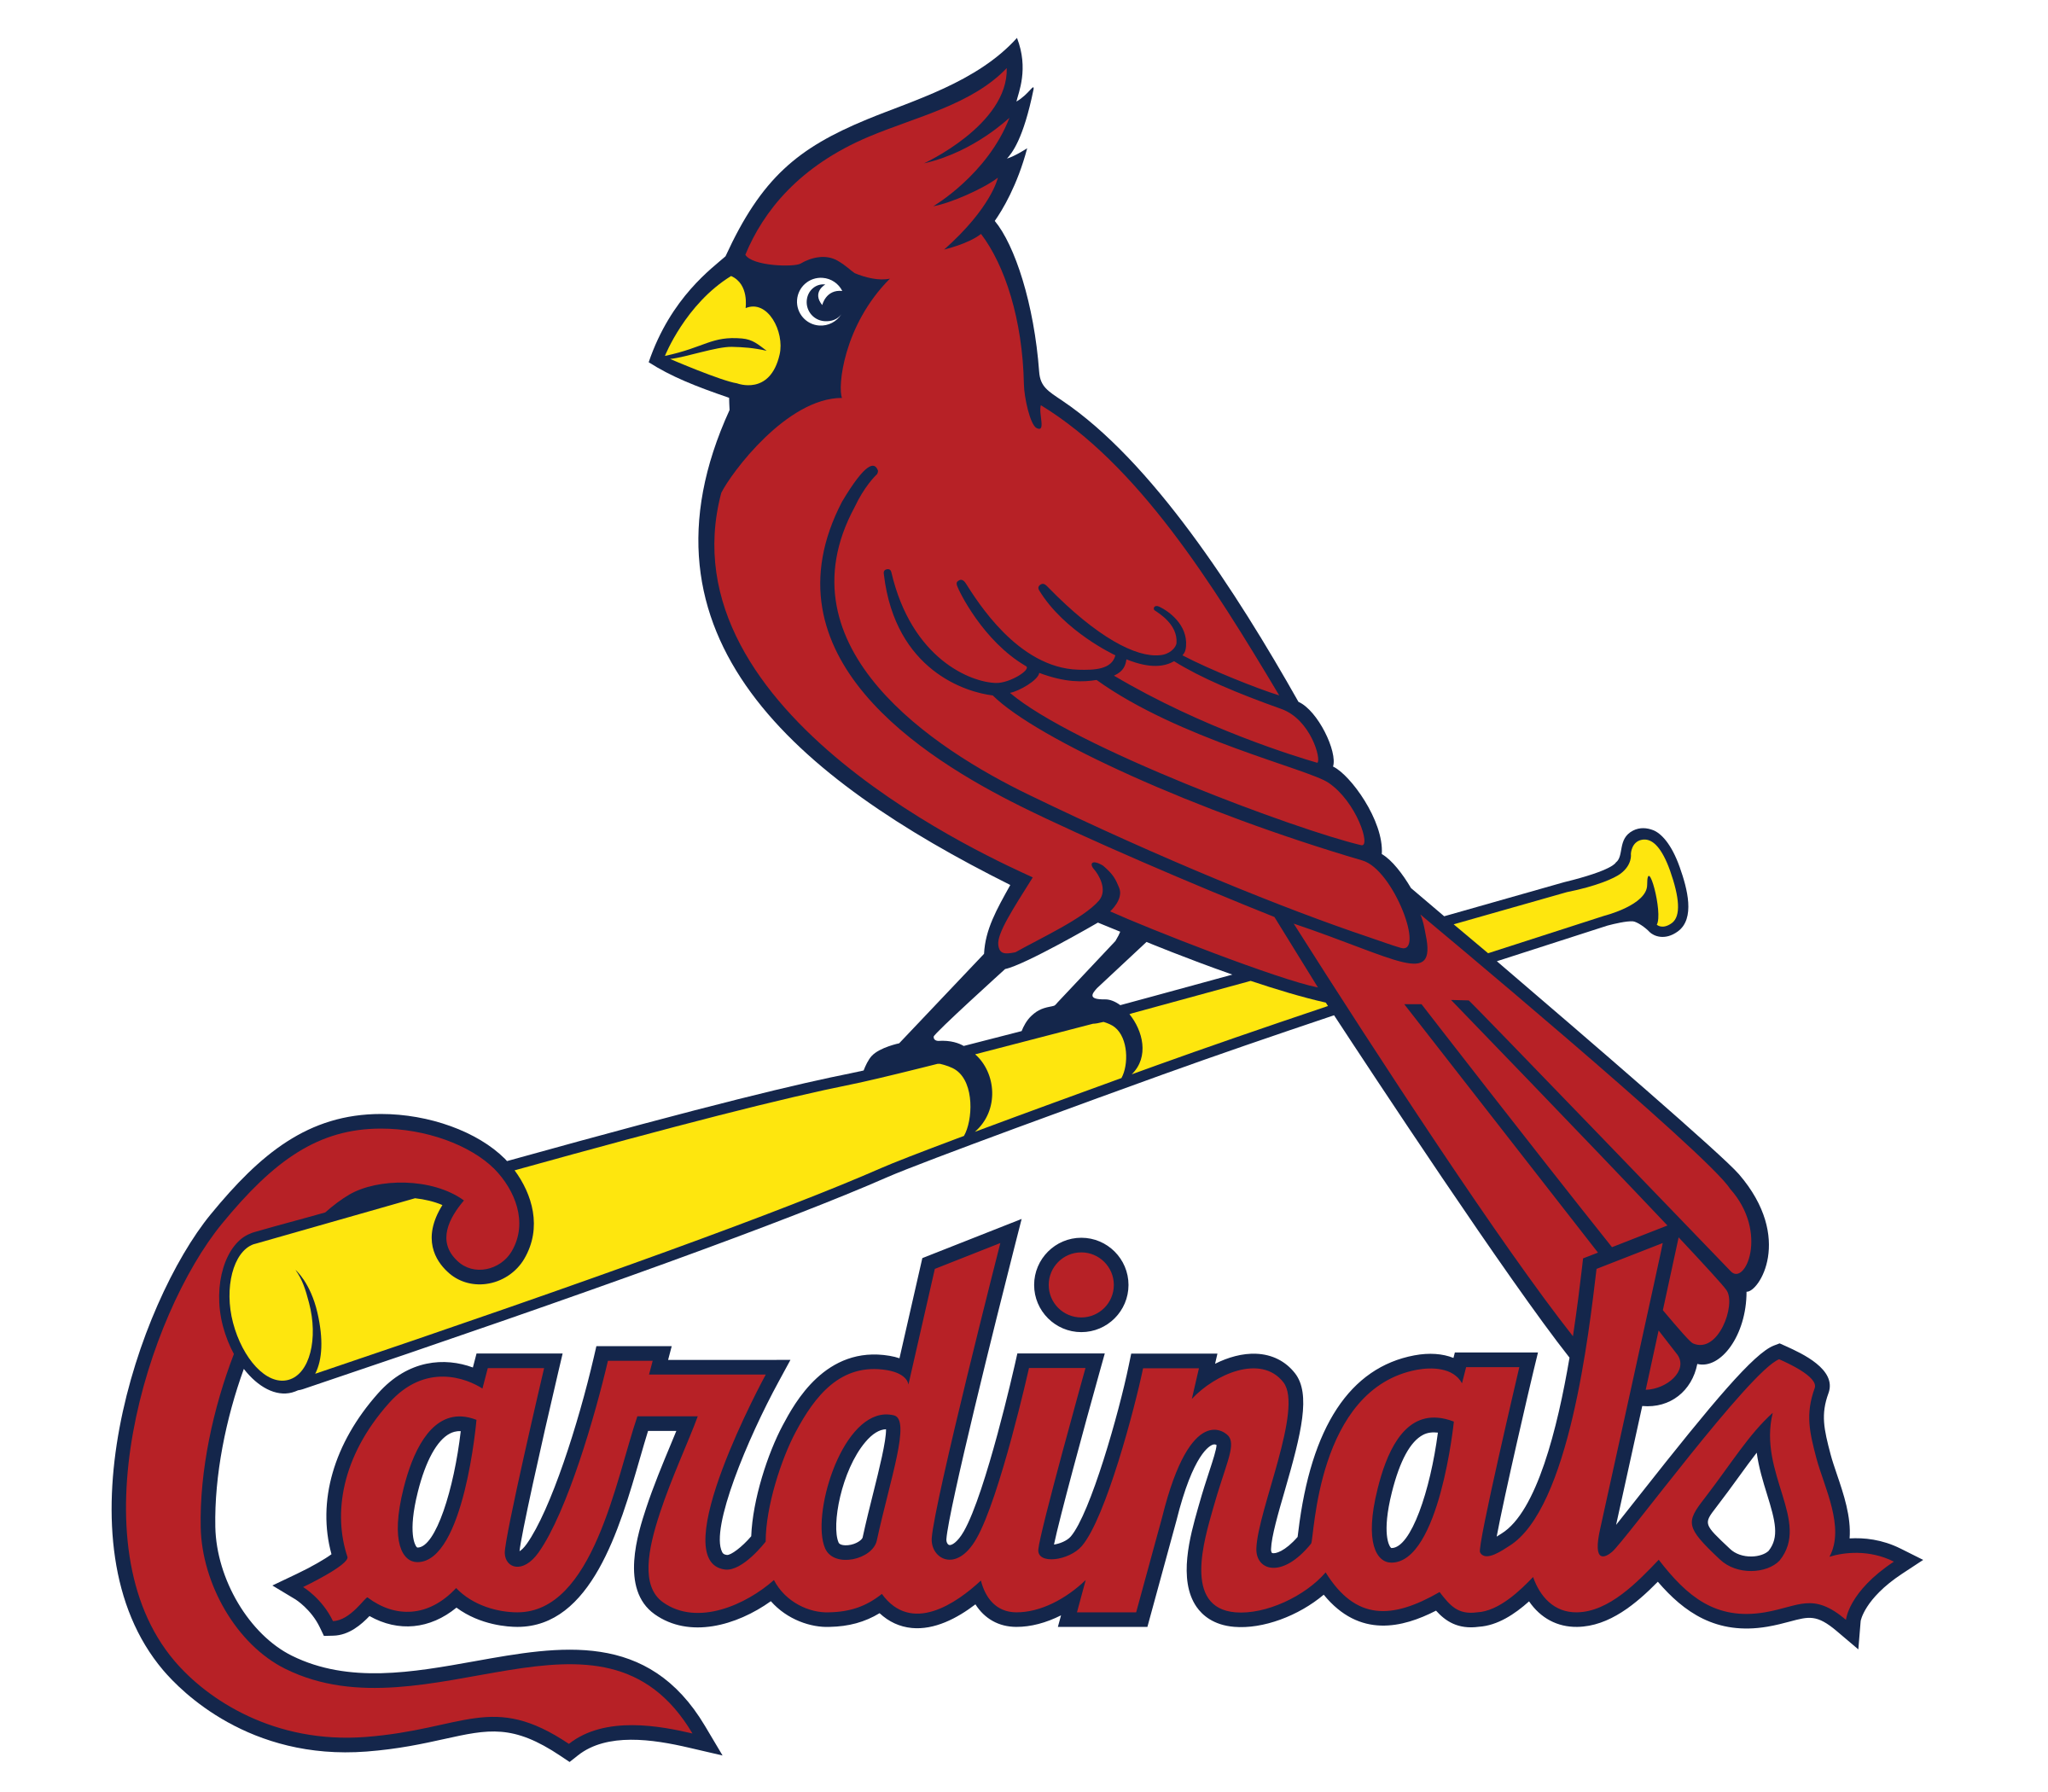 Seahawks vector old. St louis cardinals logo